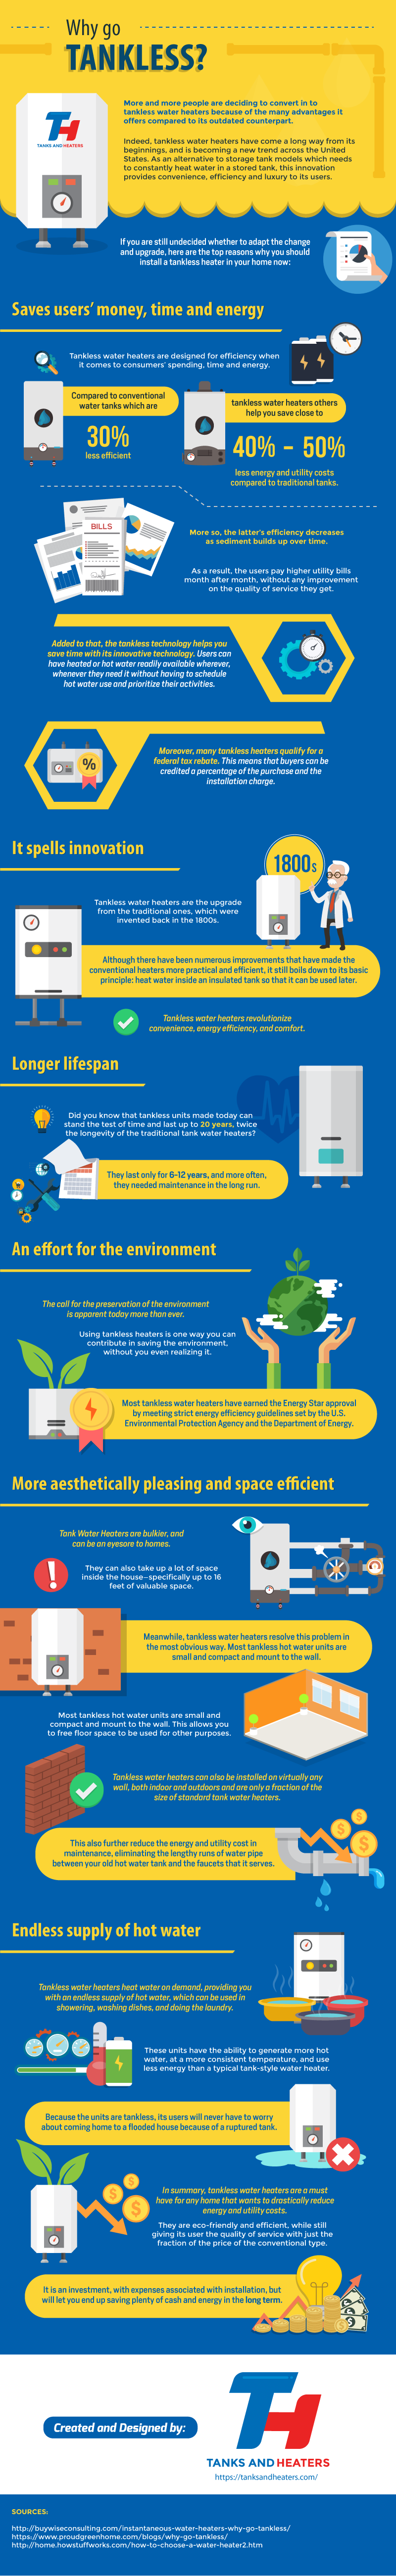 Why Go Tankless? by Tanks and Heaters